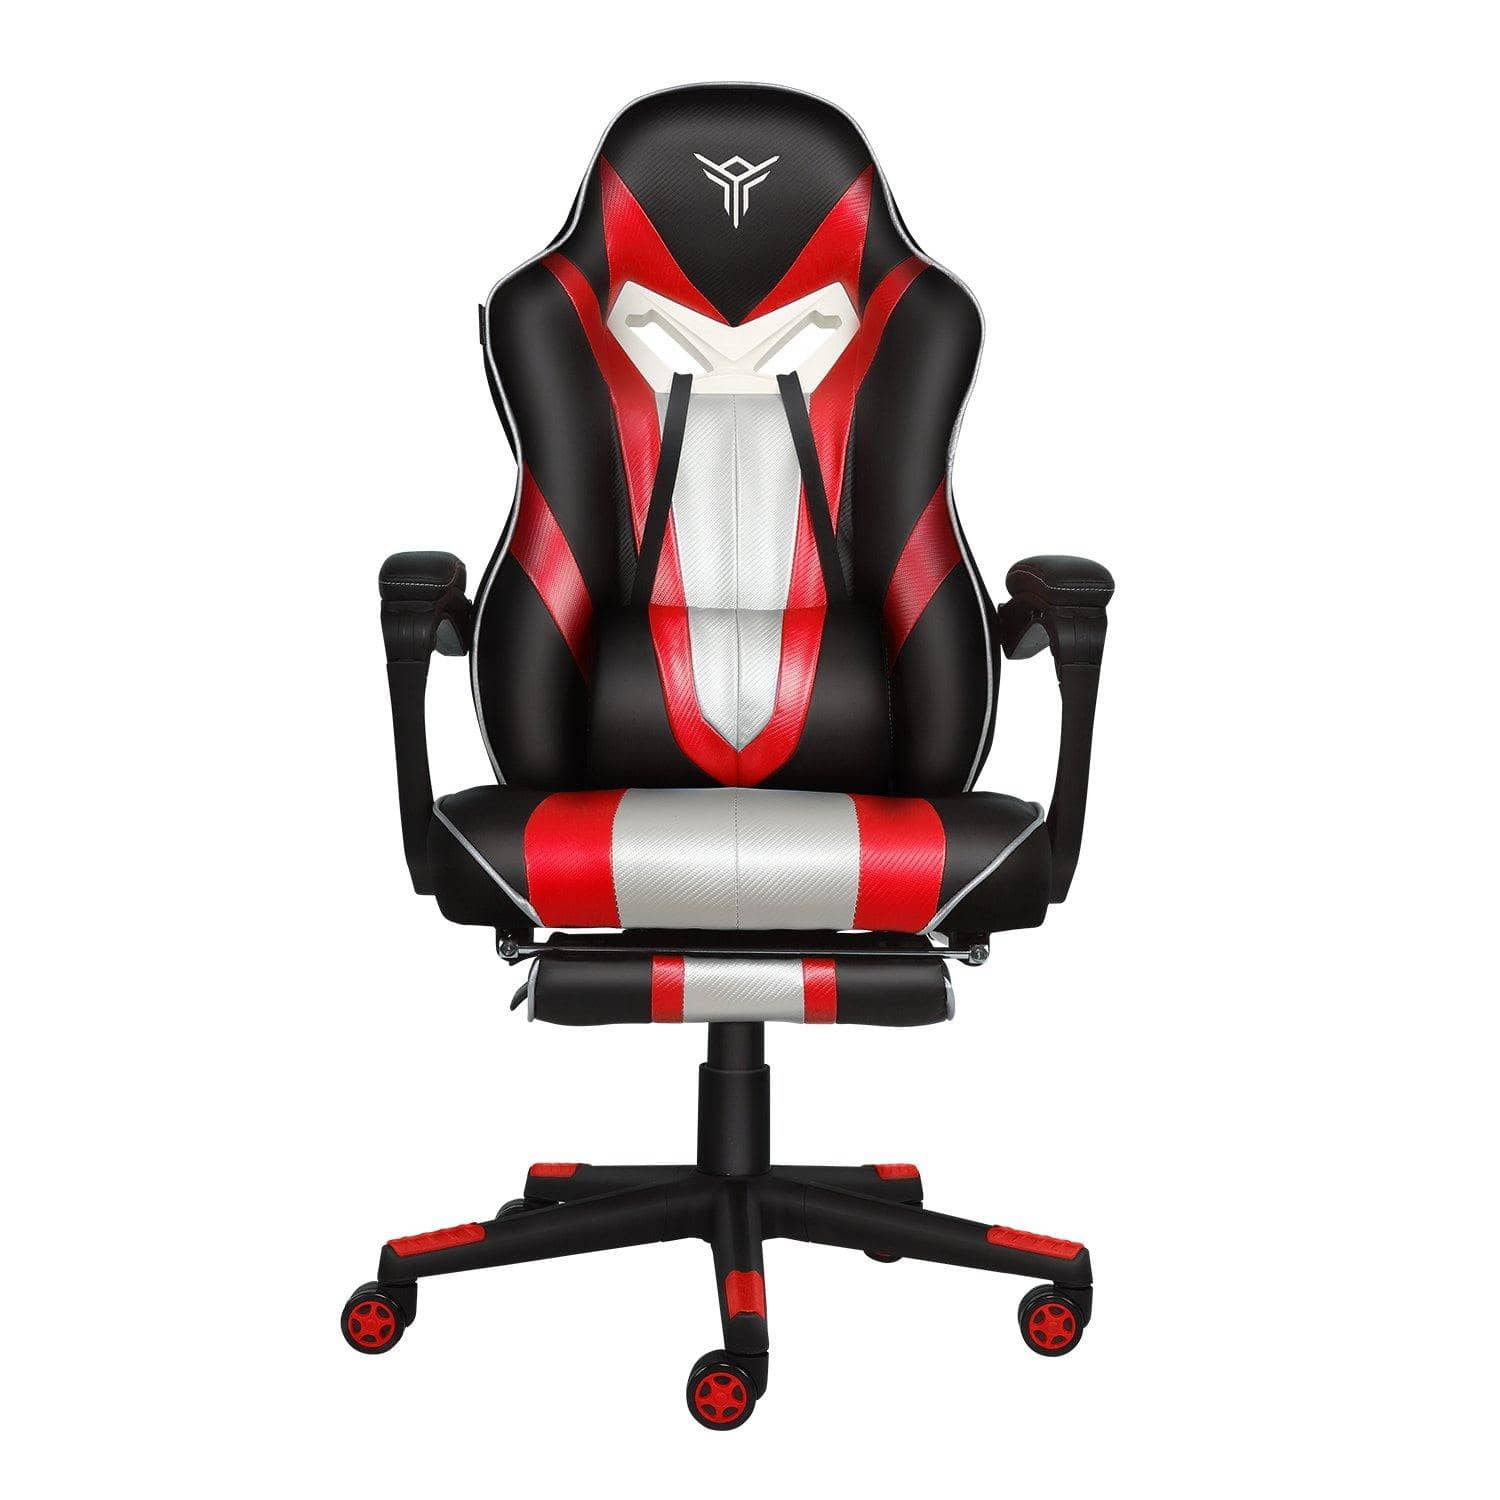 Ergonomic Racing Gaming Chair